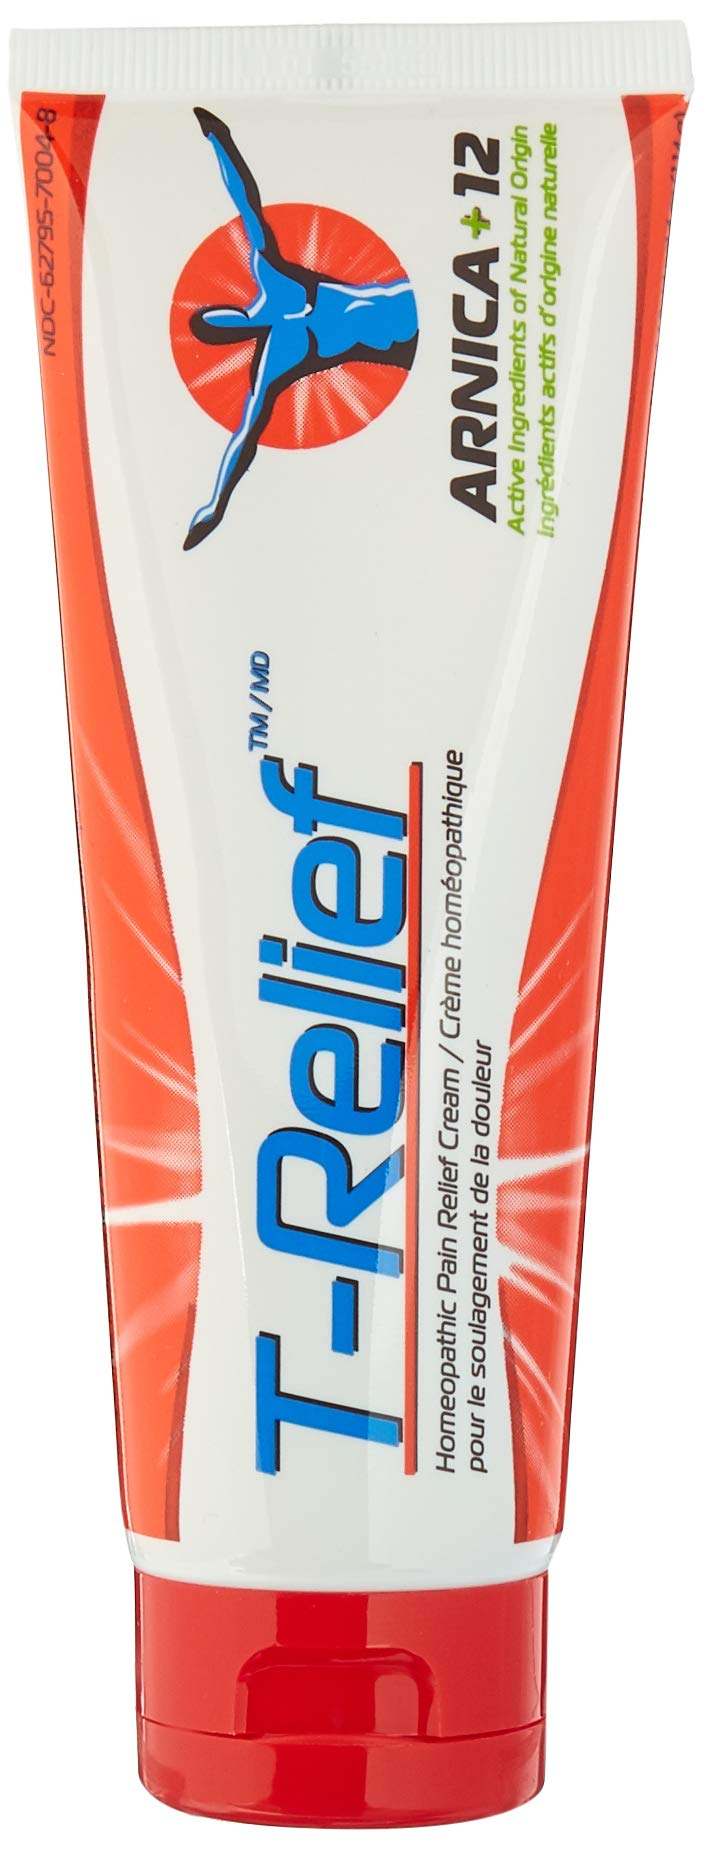 T-Relief Pain Relief Ointment, [114g] 4 oz (Pack of 4)